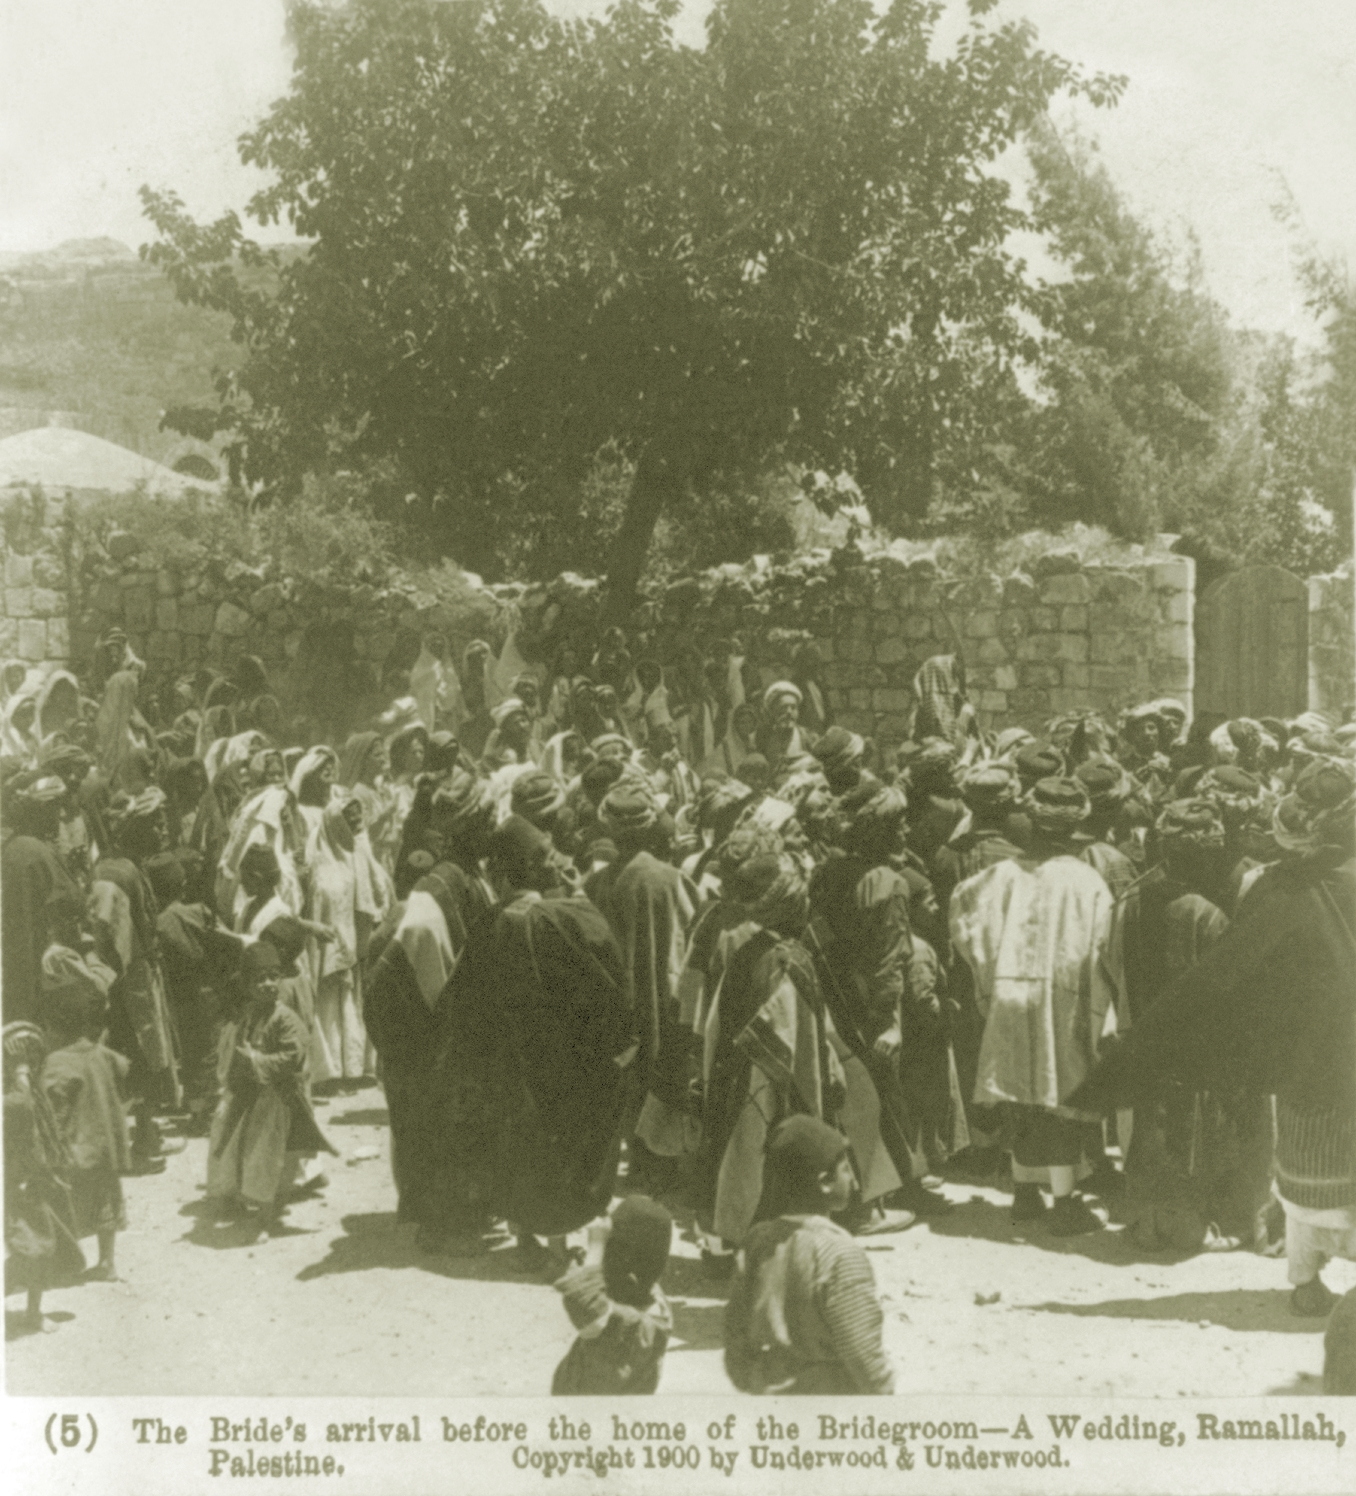 Ramallah - رام الله : A WEDDING AT RAMALLAH, PALESTINE (ca. 1900) - The bride's arrival before the home of the bridegroom